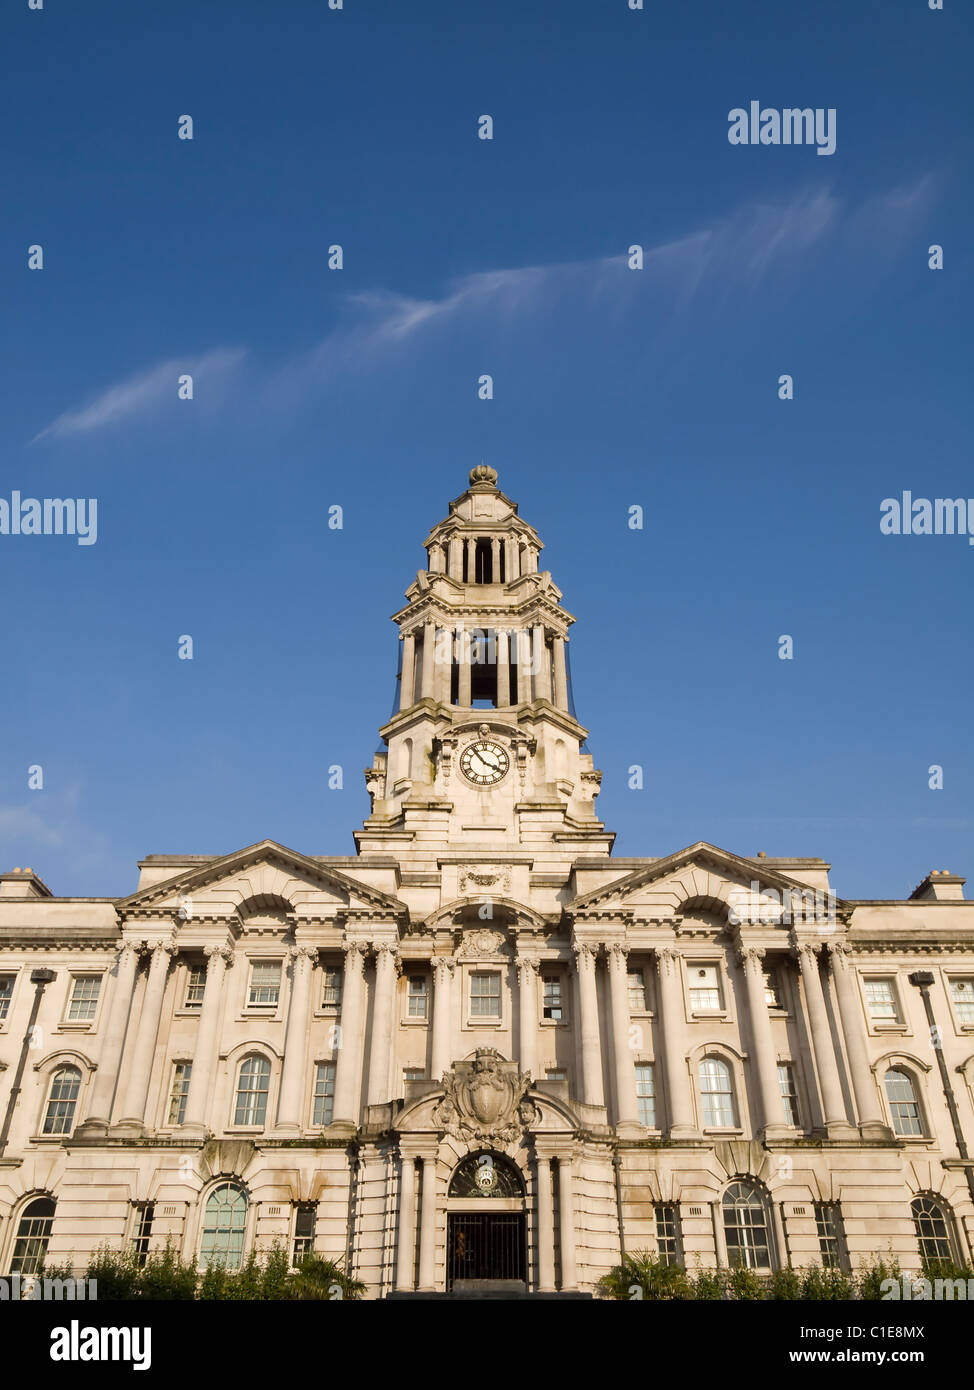 Stockport town hall entrance and clock tower, England - Stock Image